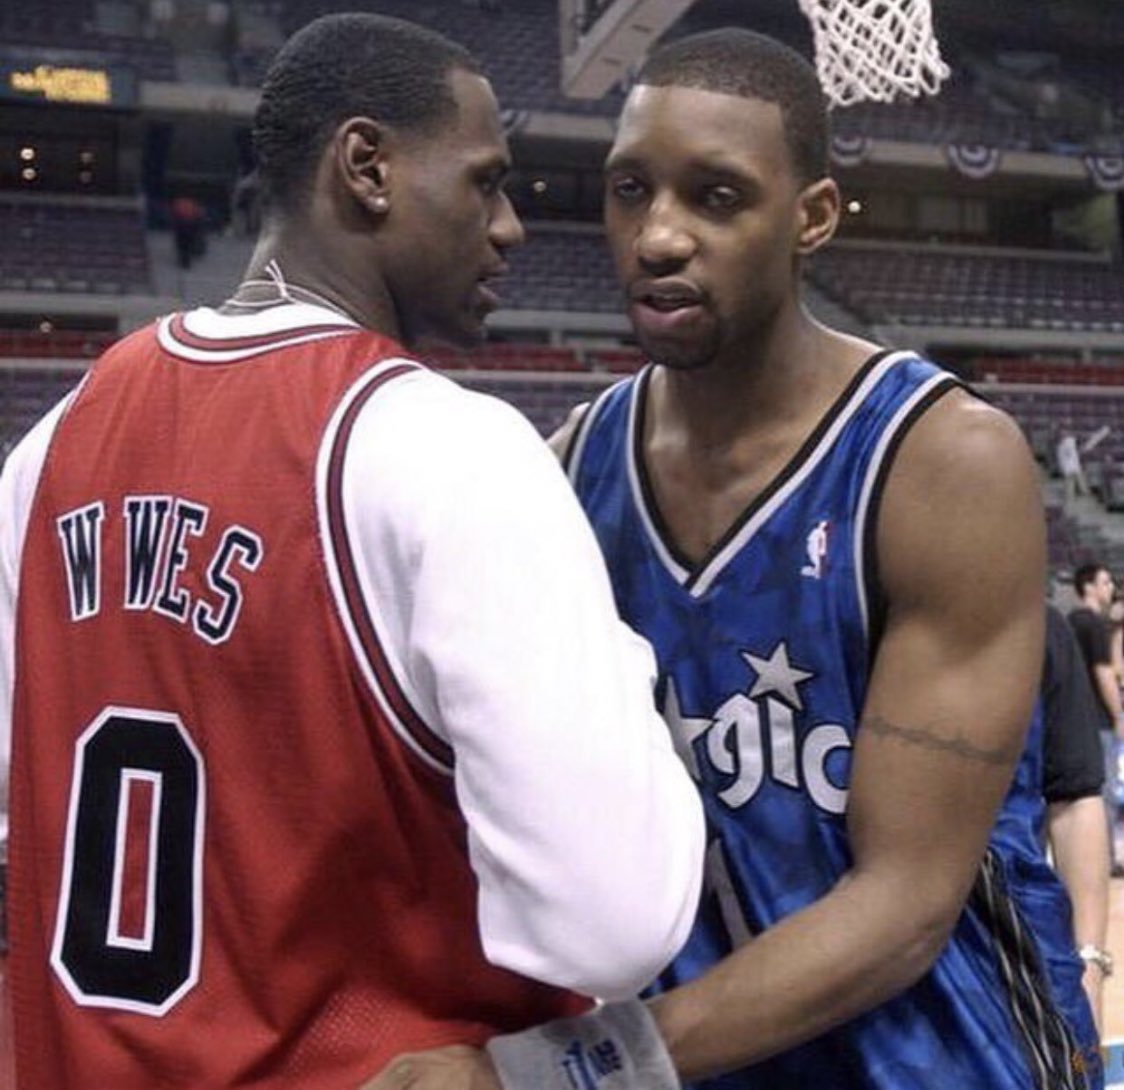 """(2003) """"Shoutout to World Wide Wes."""""""